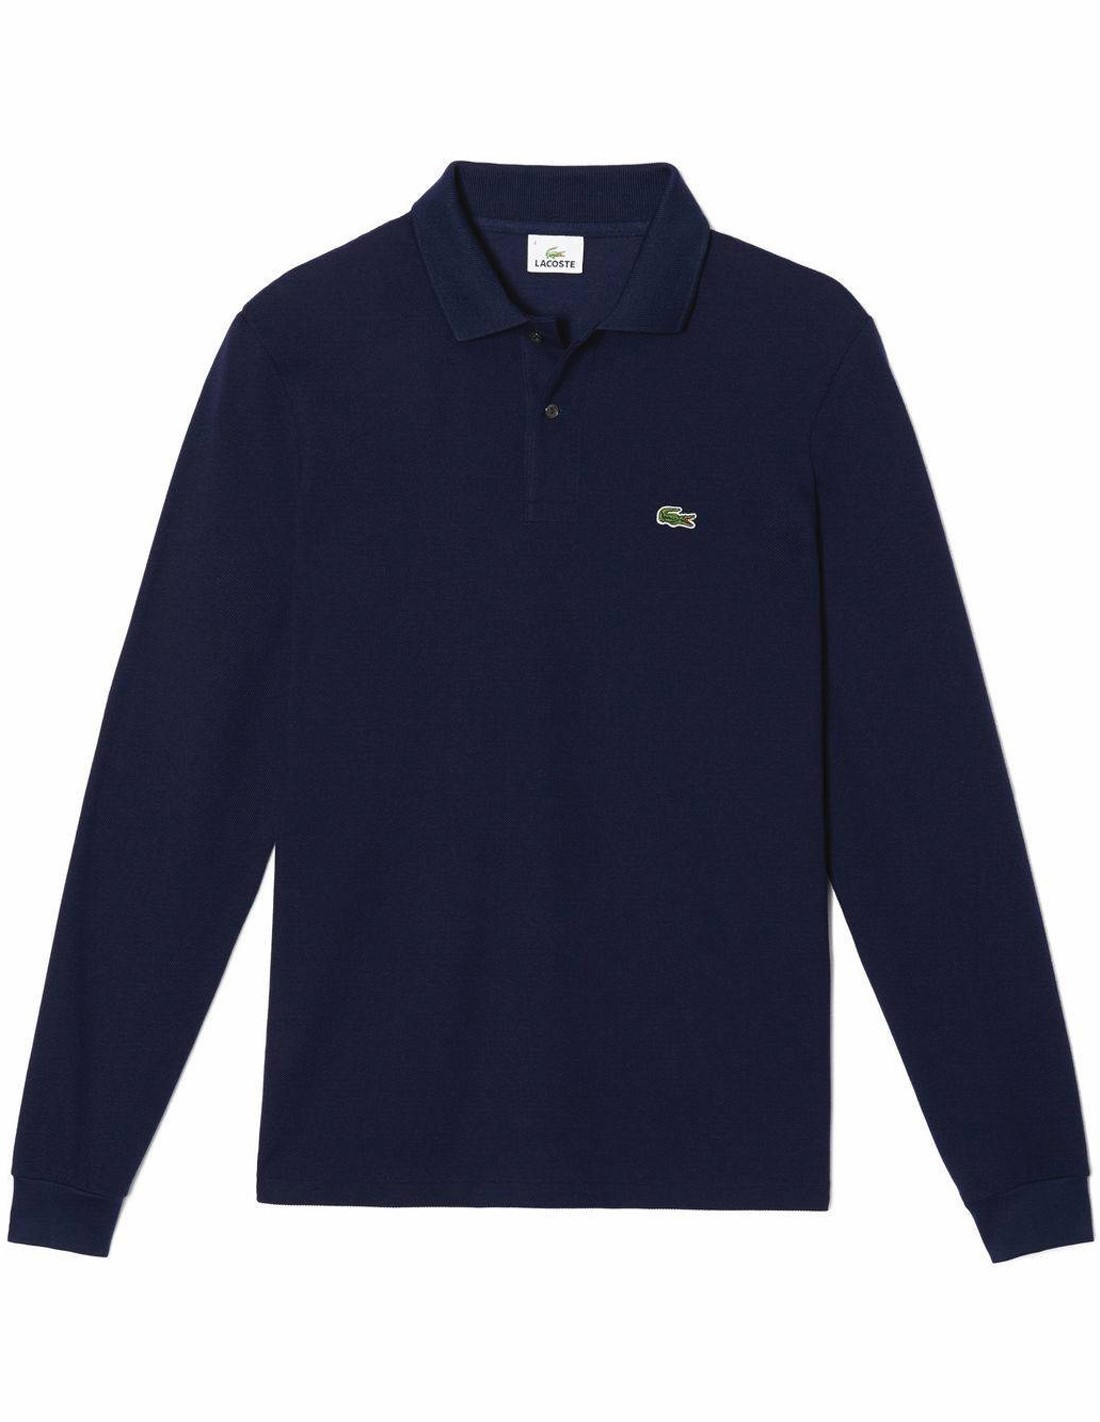 7dd61a0a47 Lacoste Polo Manica Lunga 1312 in Petit Pique Colore Rouge 240 ...